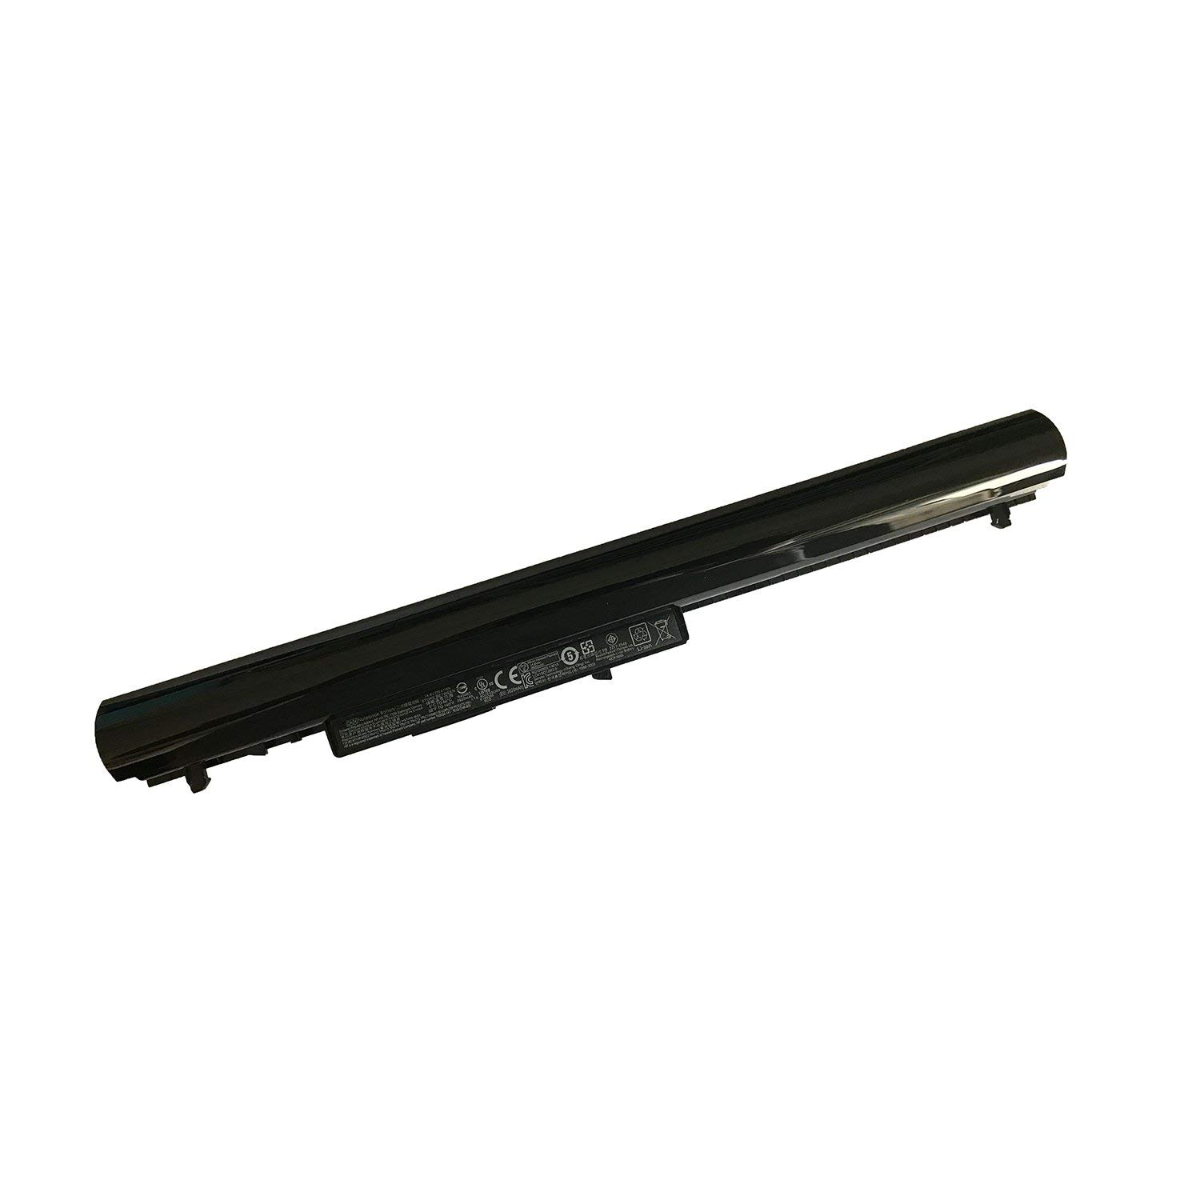 Μπαταρία Laptop - Battery for HP 15-R219NS 15-R219NV 15-R219TU 15-R219TX 15-R220 15-R220NG 15-R220NS 15-R220NW 15-R220TU 15-R220TX 15-R221NE OEM Υψηλής ποιότητας (Κωδ.1-BAT0002)